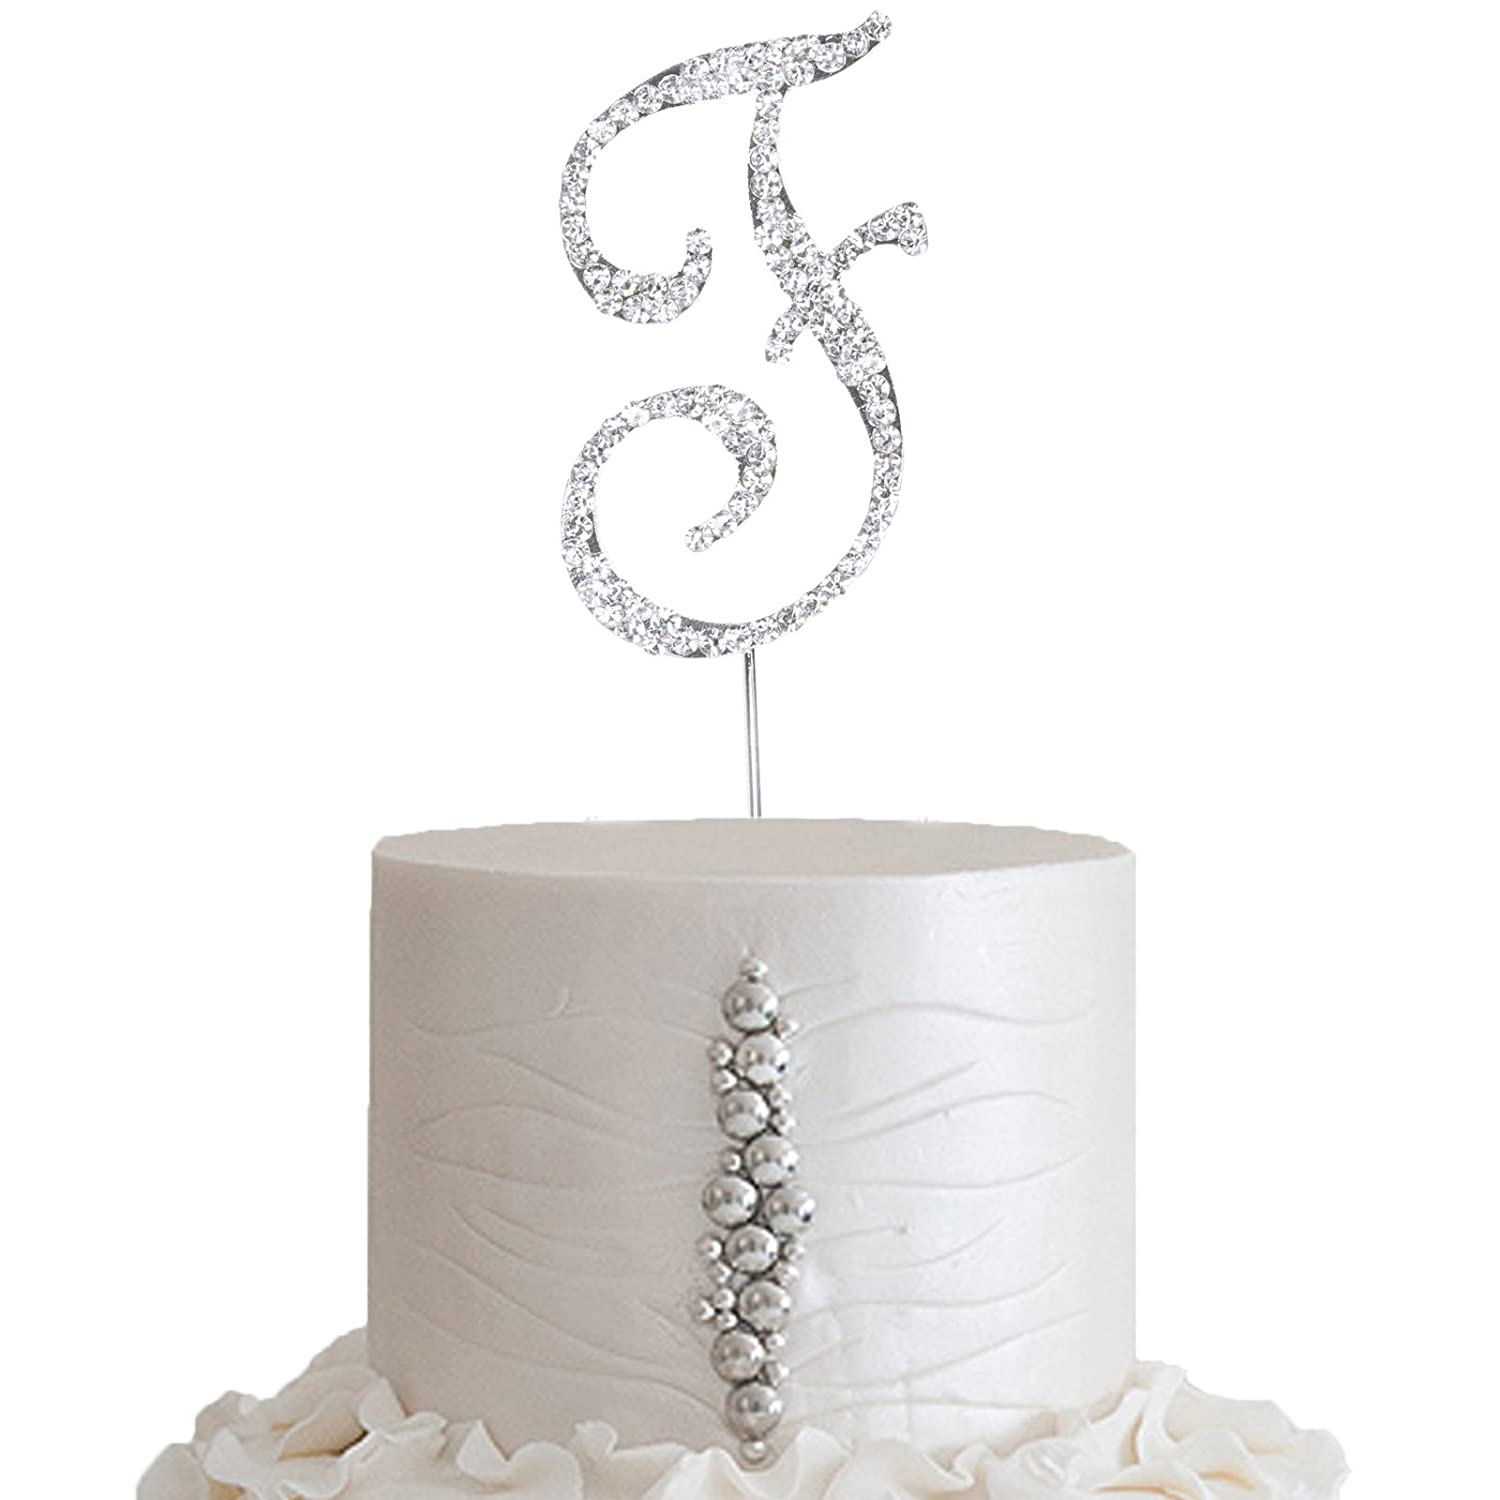 """2.5/"""" SILVER Letter G Rhinestone Cake Topper Wedding Party Decorations SALE"""